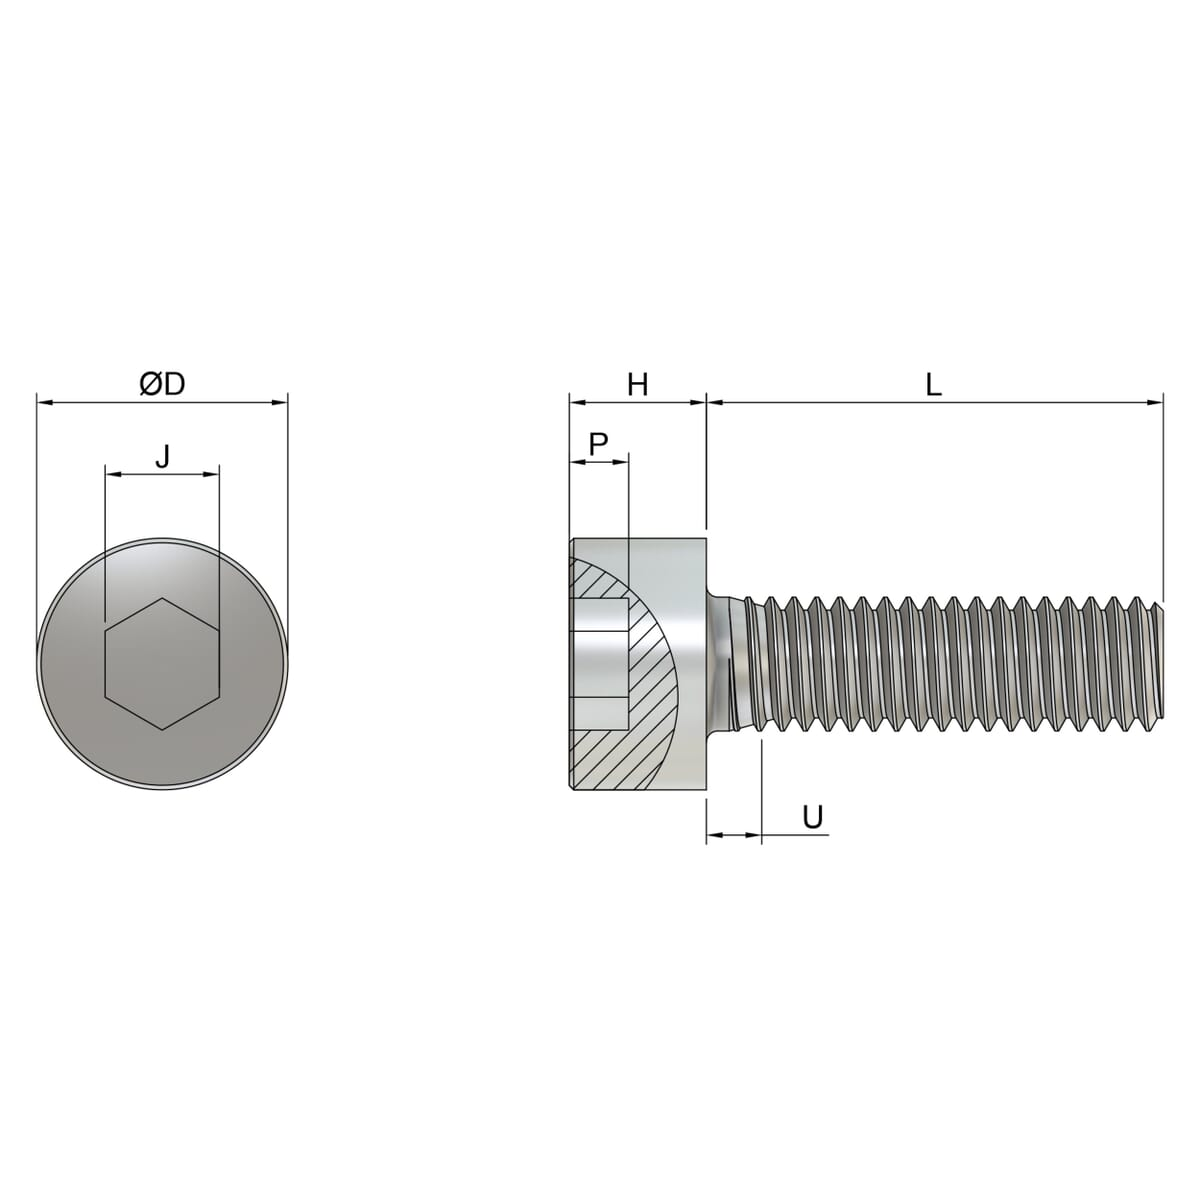 M8 x 100mm Full Thread Cap Head Screws (DIN 912) - Marine Stainless Steel (A4) Drawing